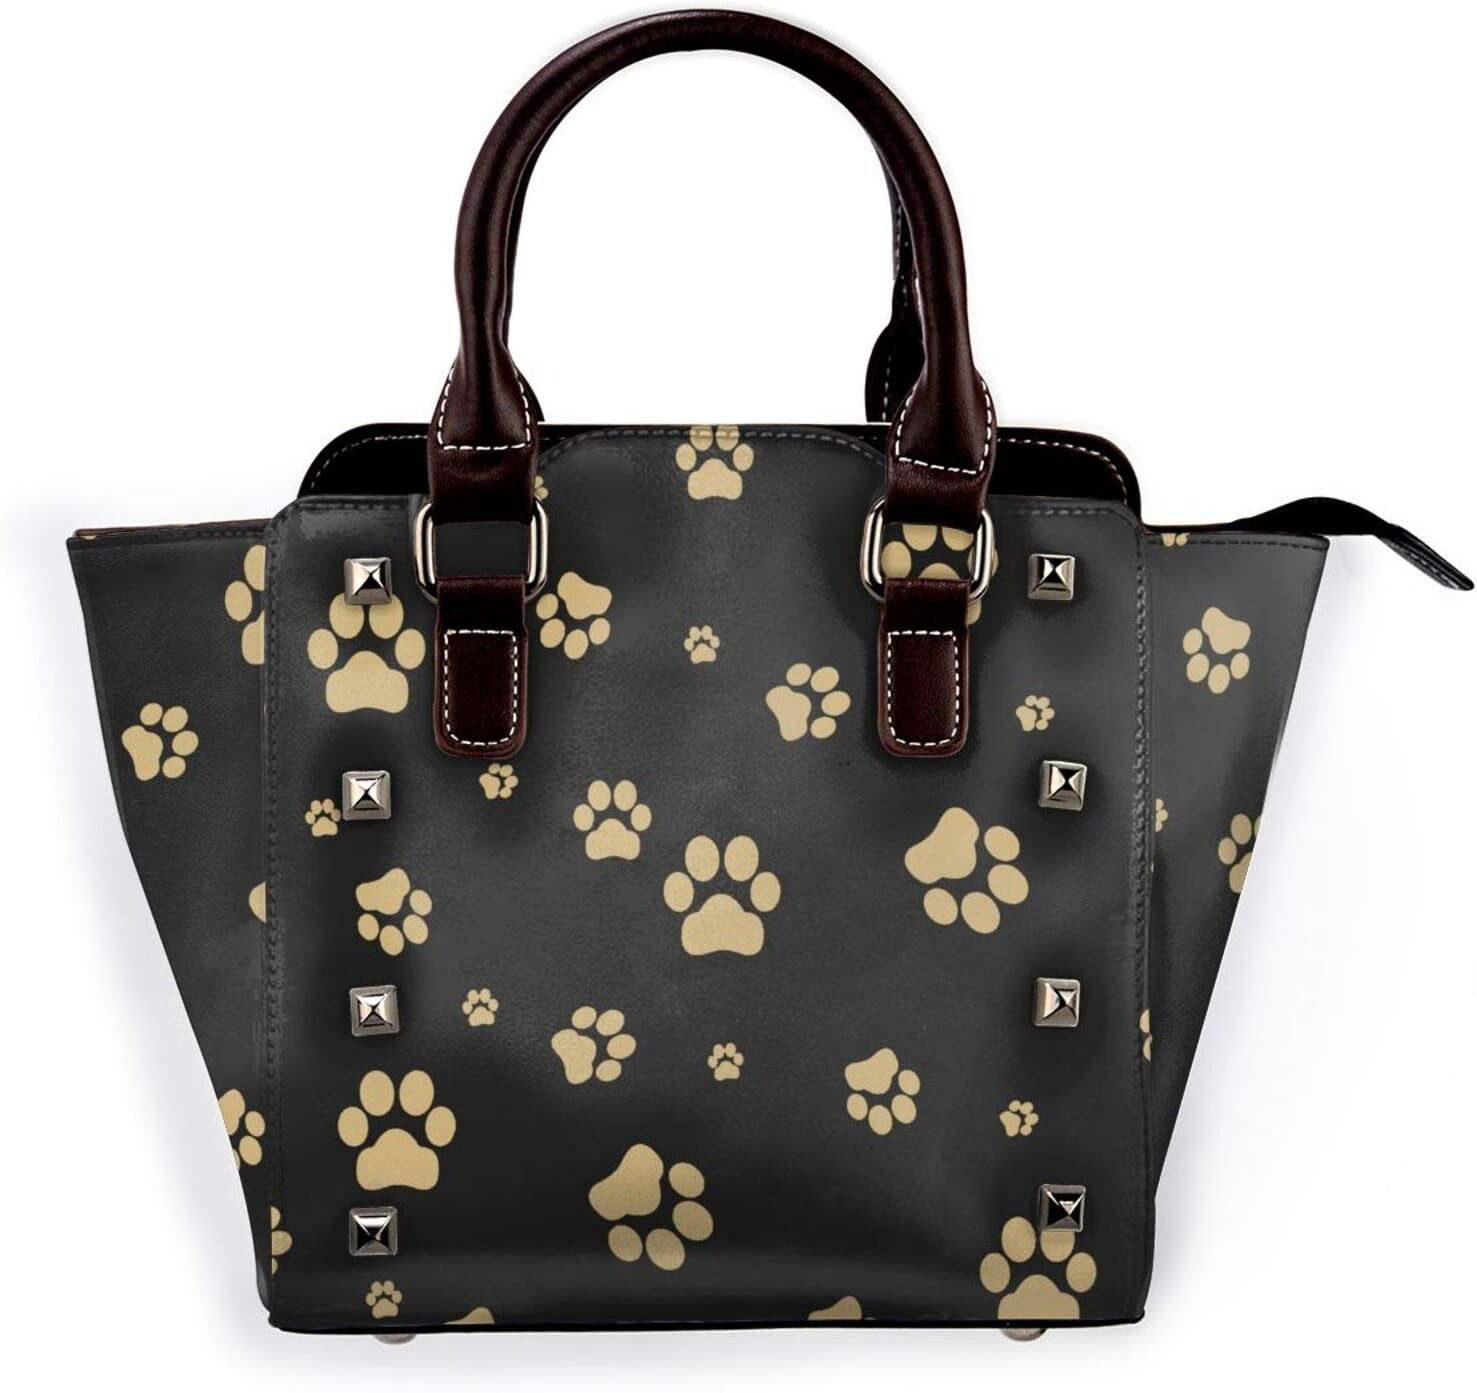 Tote Bag Today's only Dog Paw Gold Non-Fading Printed Handbag Shoulder Max 76% OFF 3D